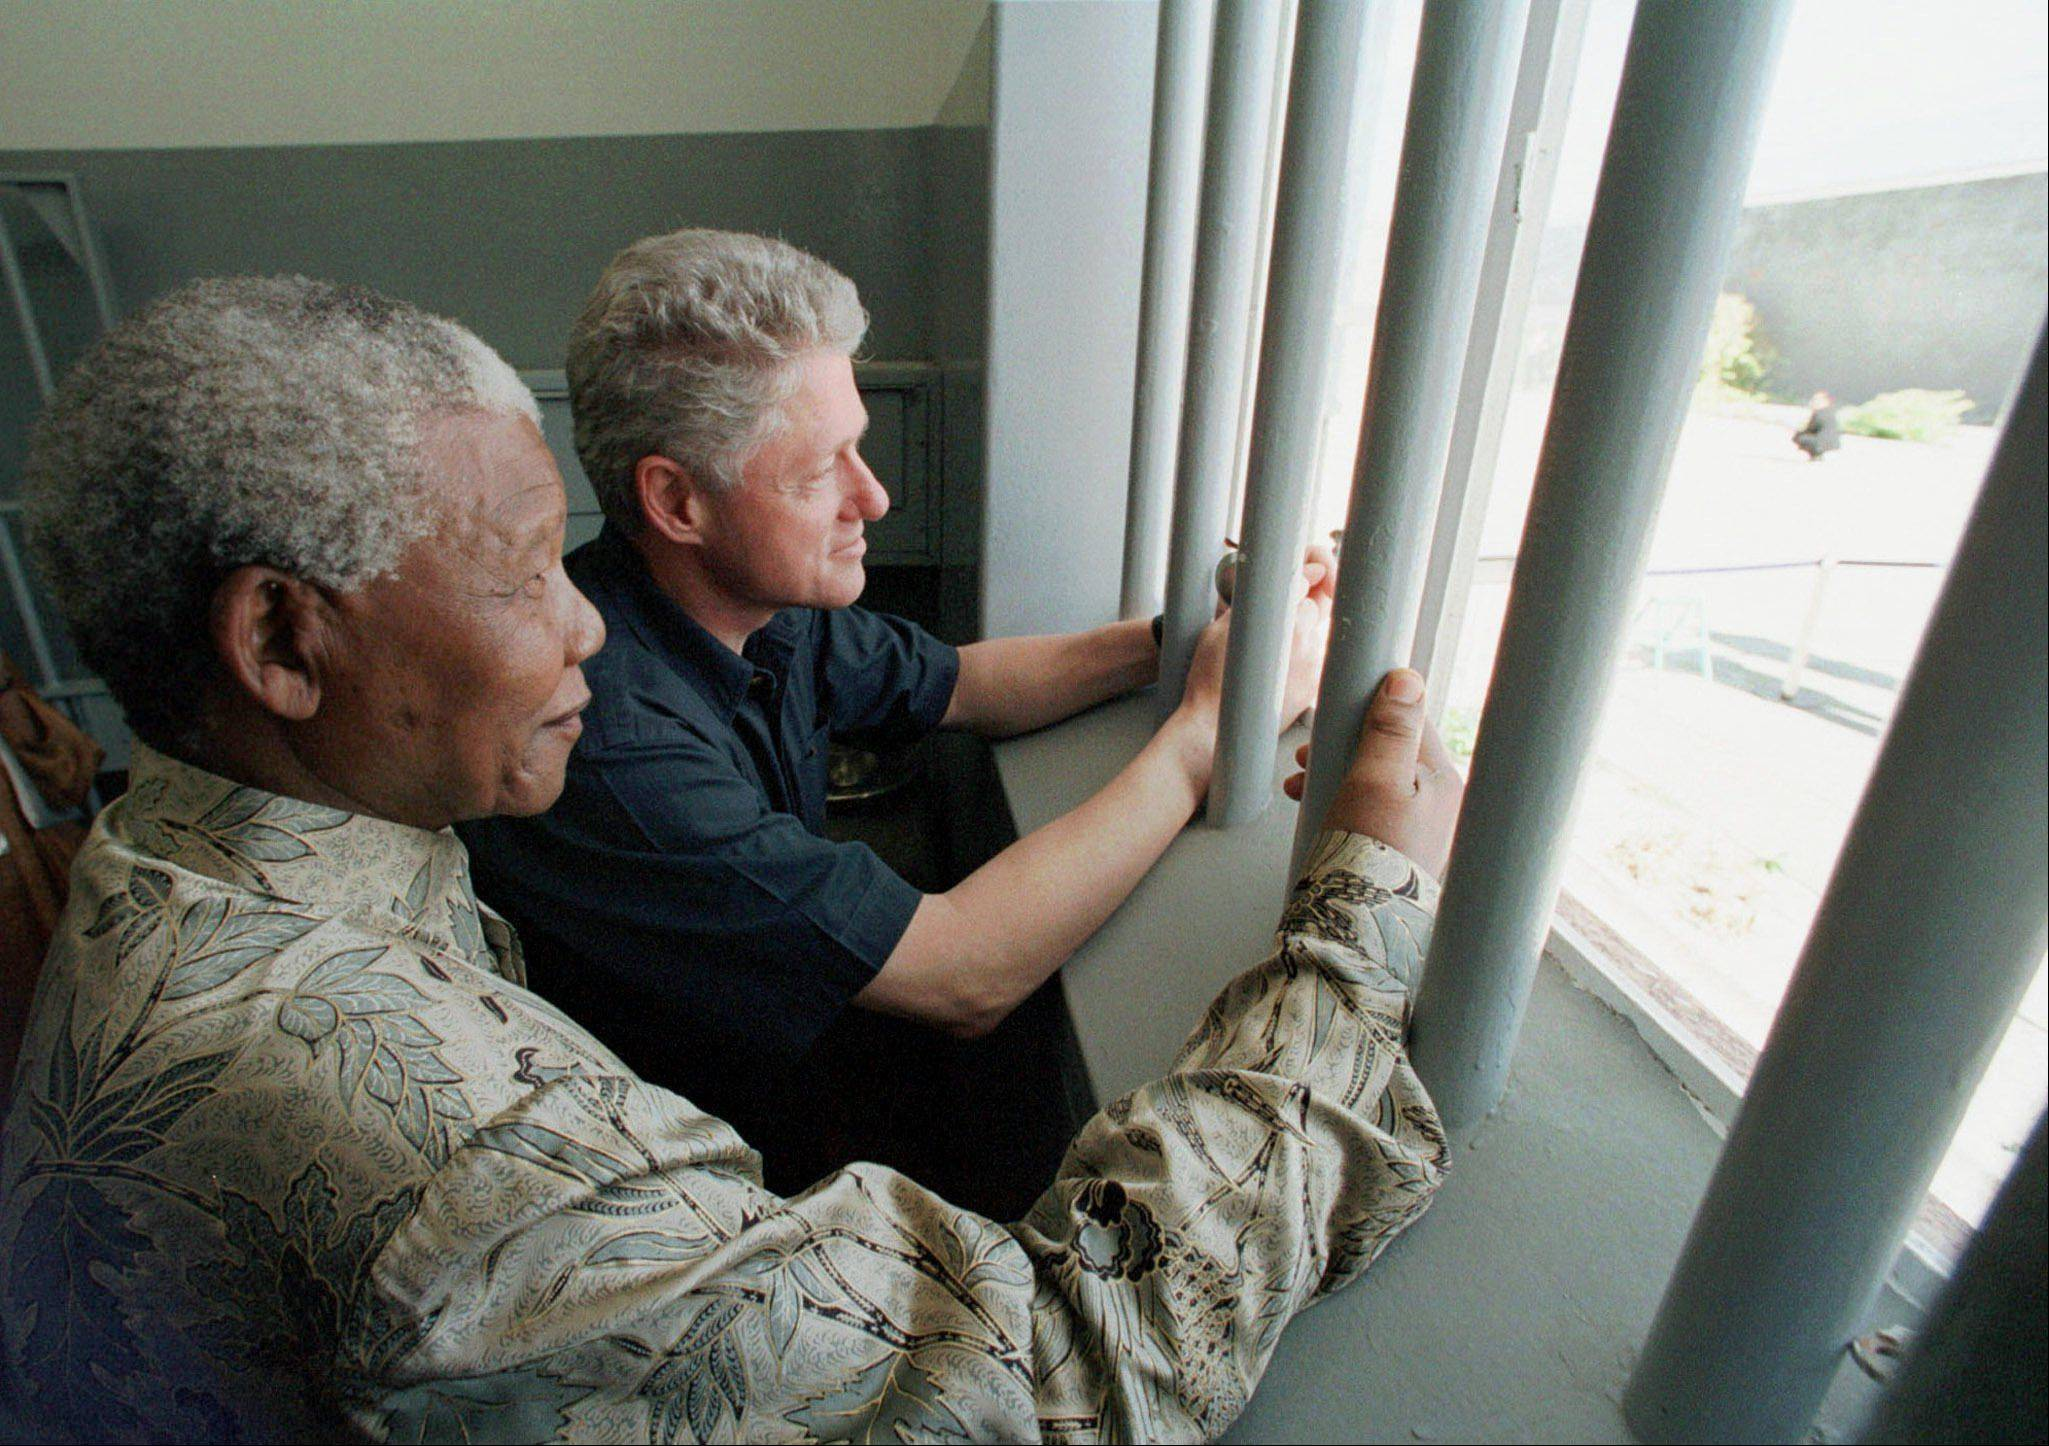 South African President Nelson Mandela, foreground, and U.S. President Bill Clinton peer out from Section B, prison cell No. 5, on Robben Island, South Africa March 27, 1998. Mandela spent 18 years of his 27-year prison term on the island.